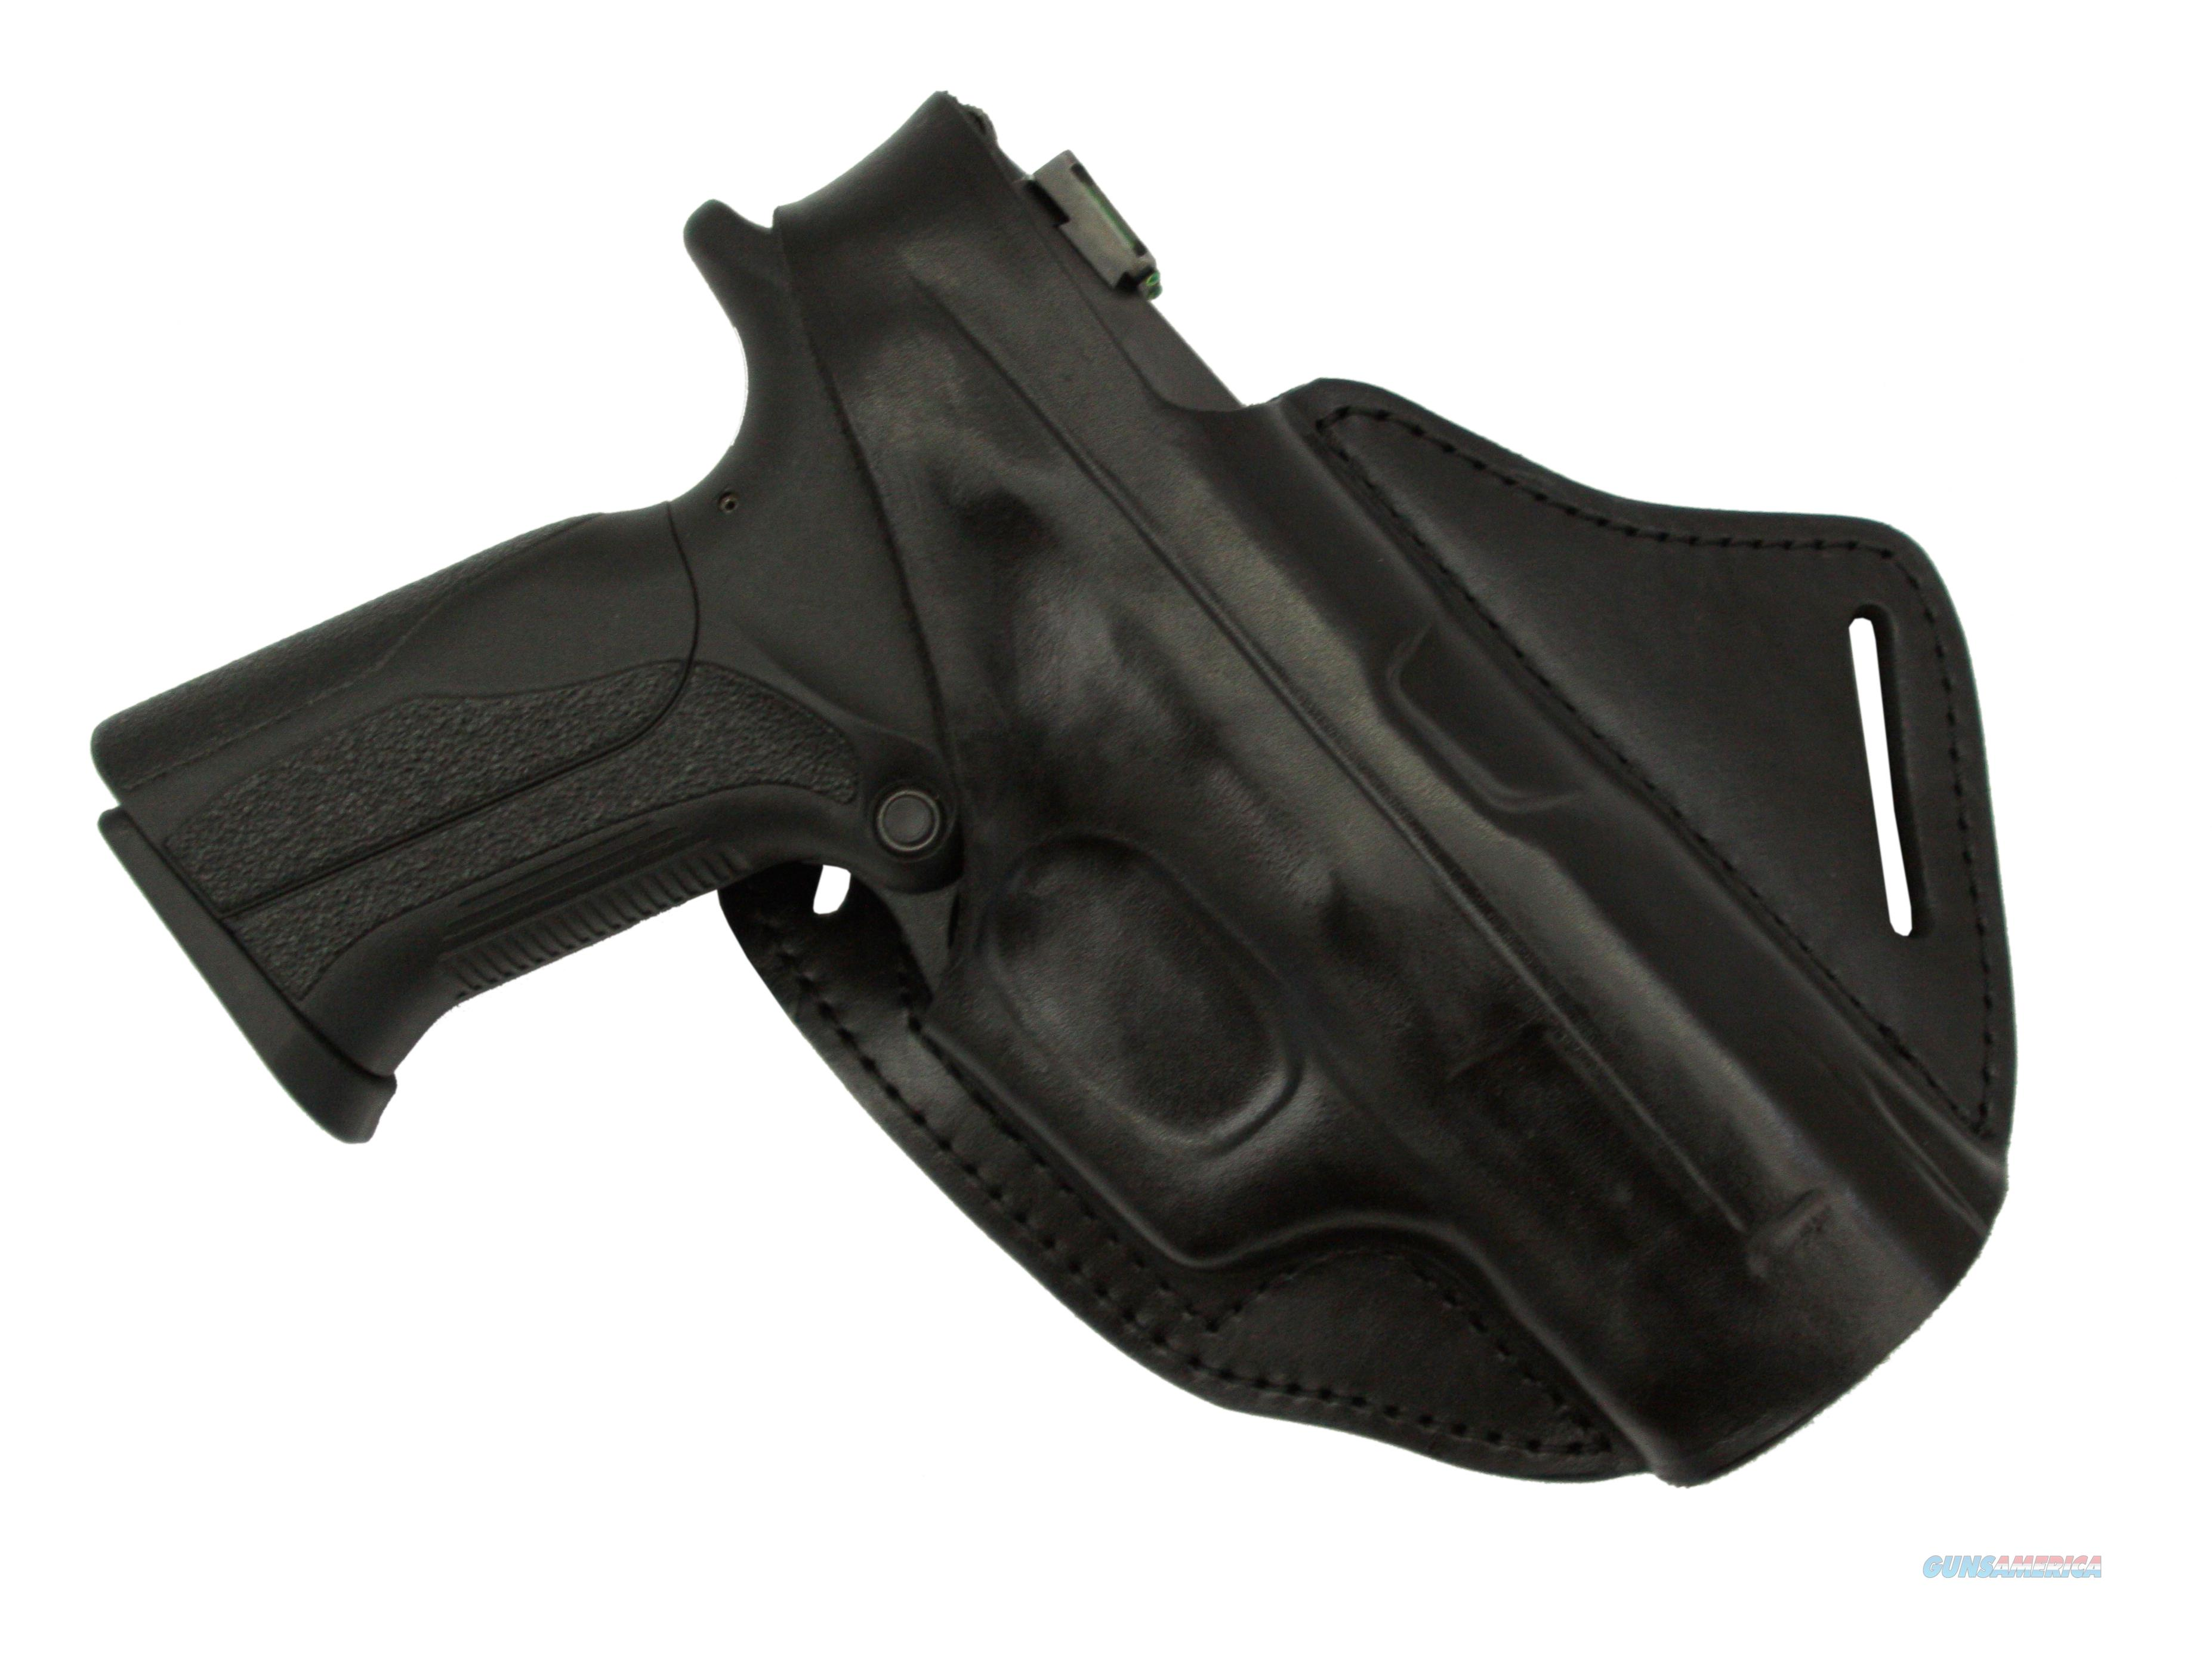 Cross Draw Leather Belt Holster  CZ 75 P-01  Non-Guns > Holsters and Gunleather > Concealed Carry